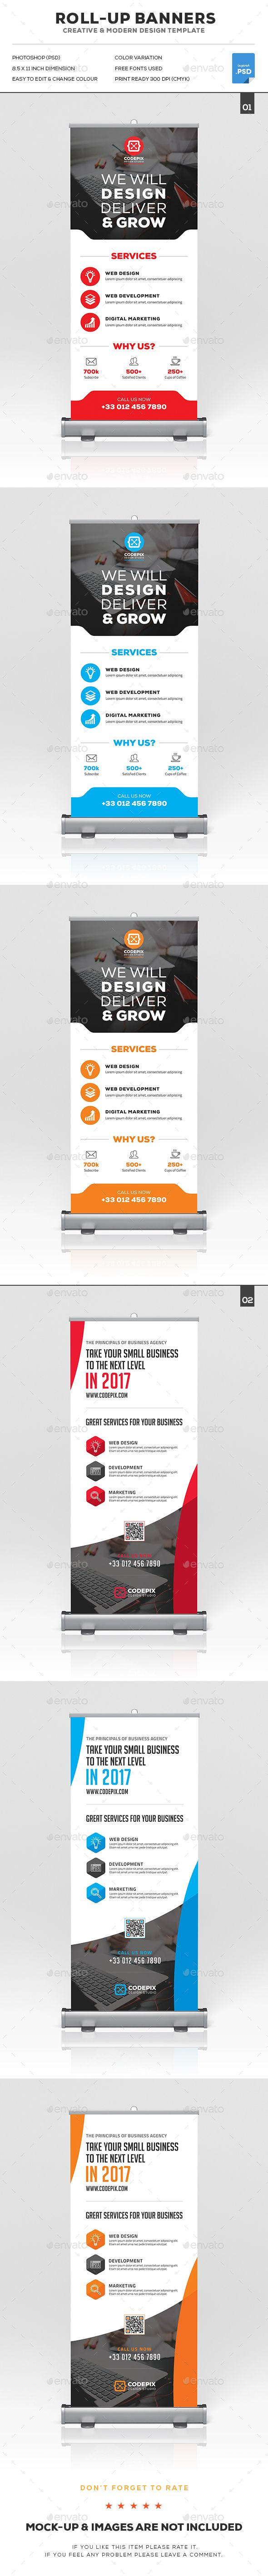 Corporate Roll-Up Banner Bundle Templates PSD. Download here: http://graphicriver.net/item/corporate-rollup-banner-bundle/16918373?ref=ksioks